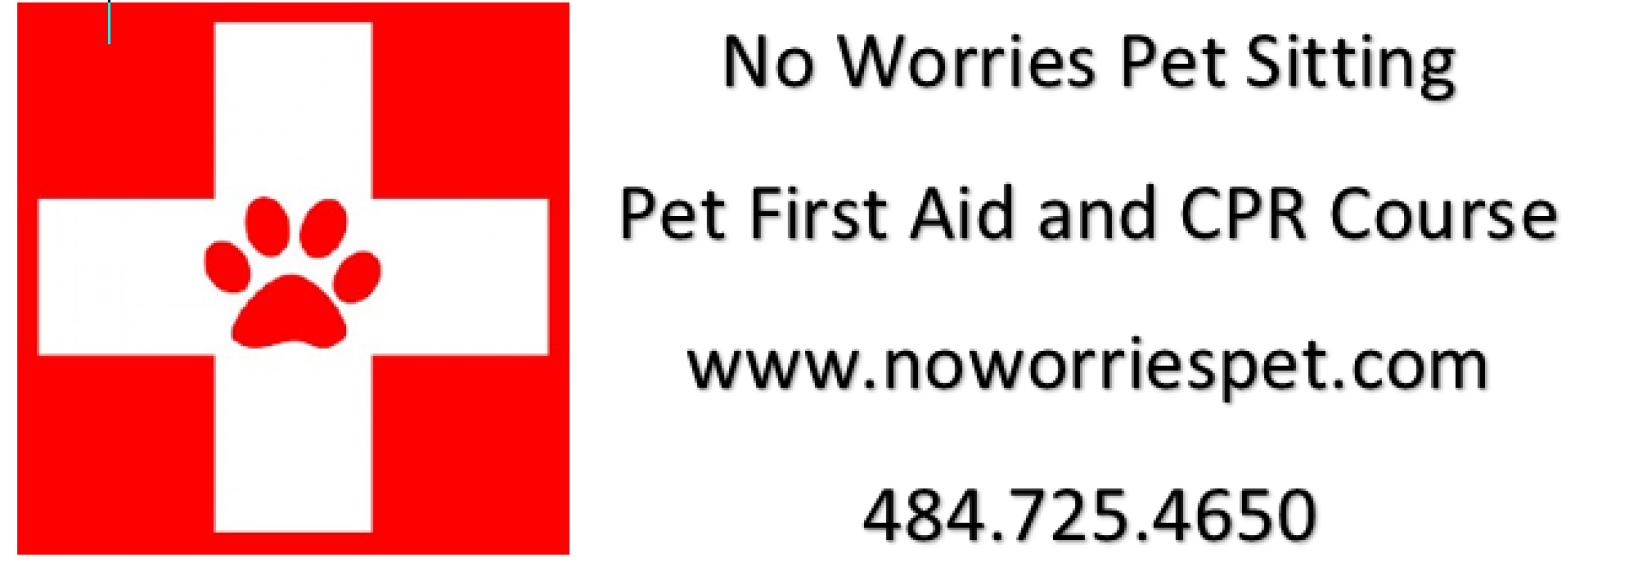 aid cpr pet certification patch course nazareth worries hosted pa